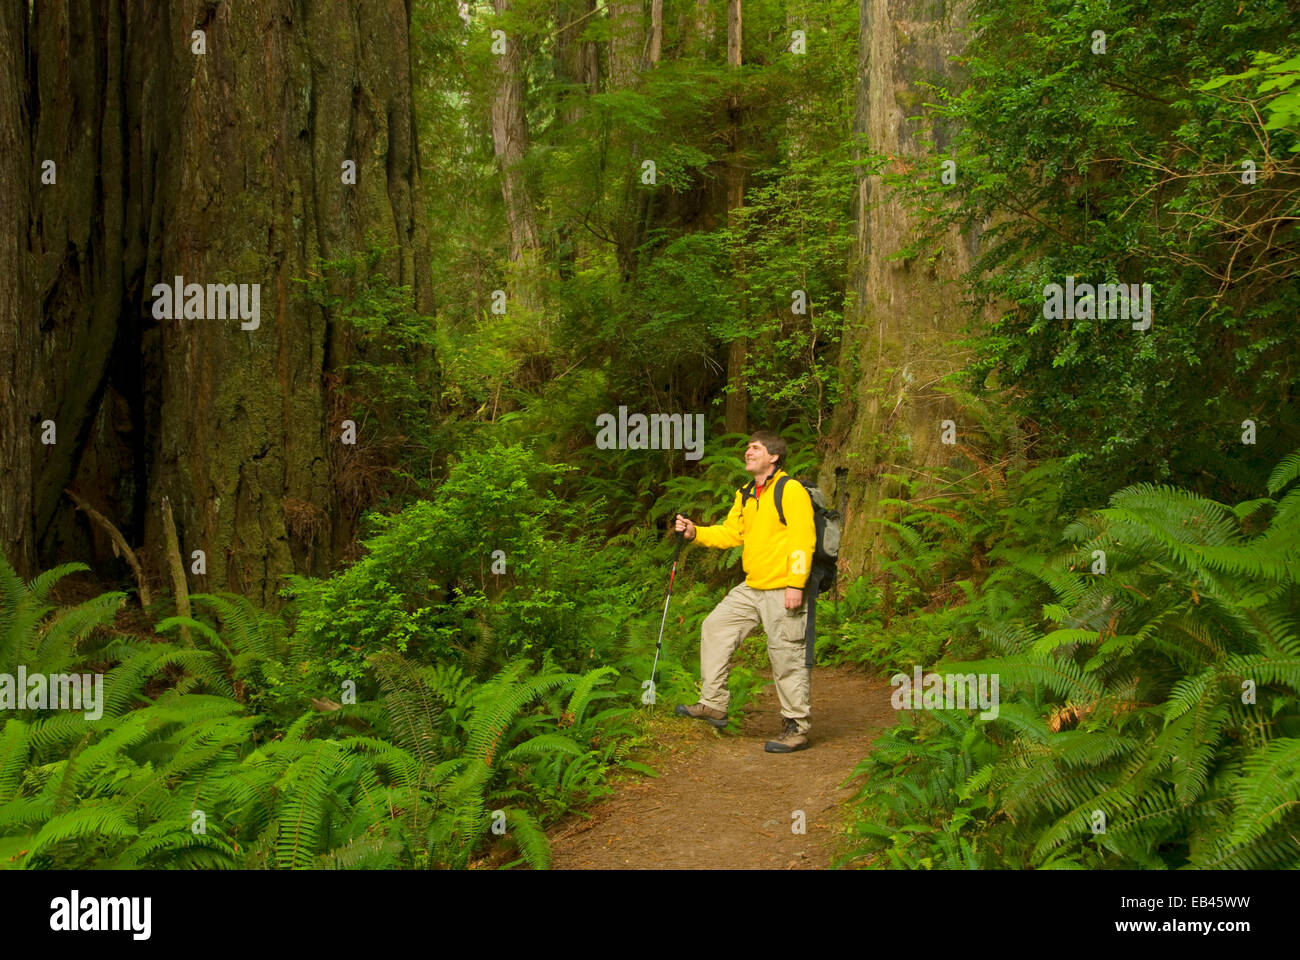 Trillium Falls Trail, Redwood National Park, California - Stock Image